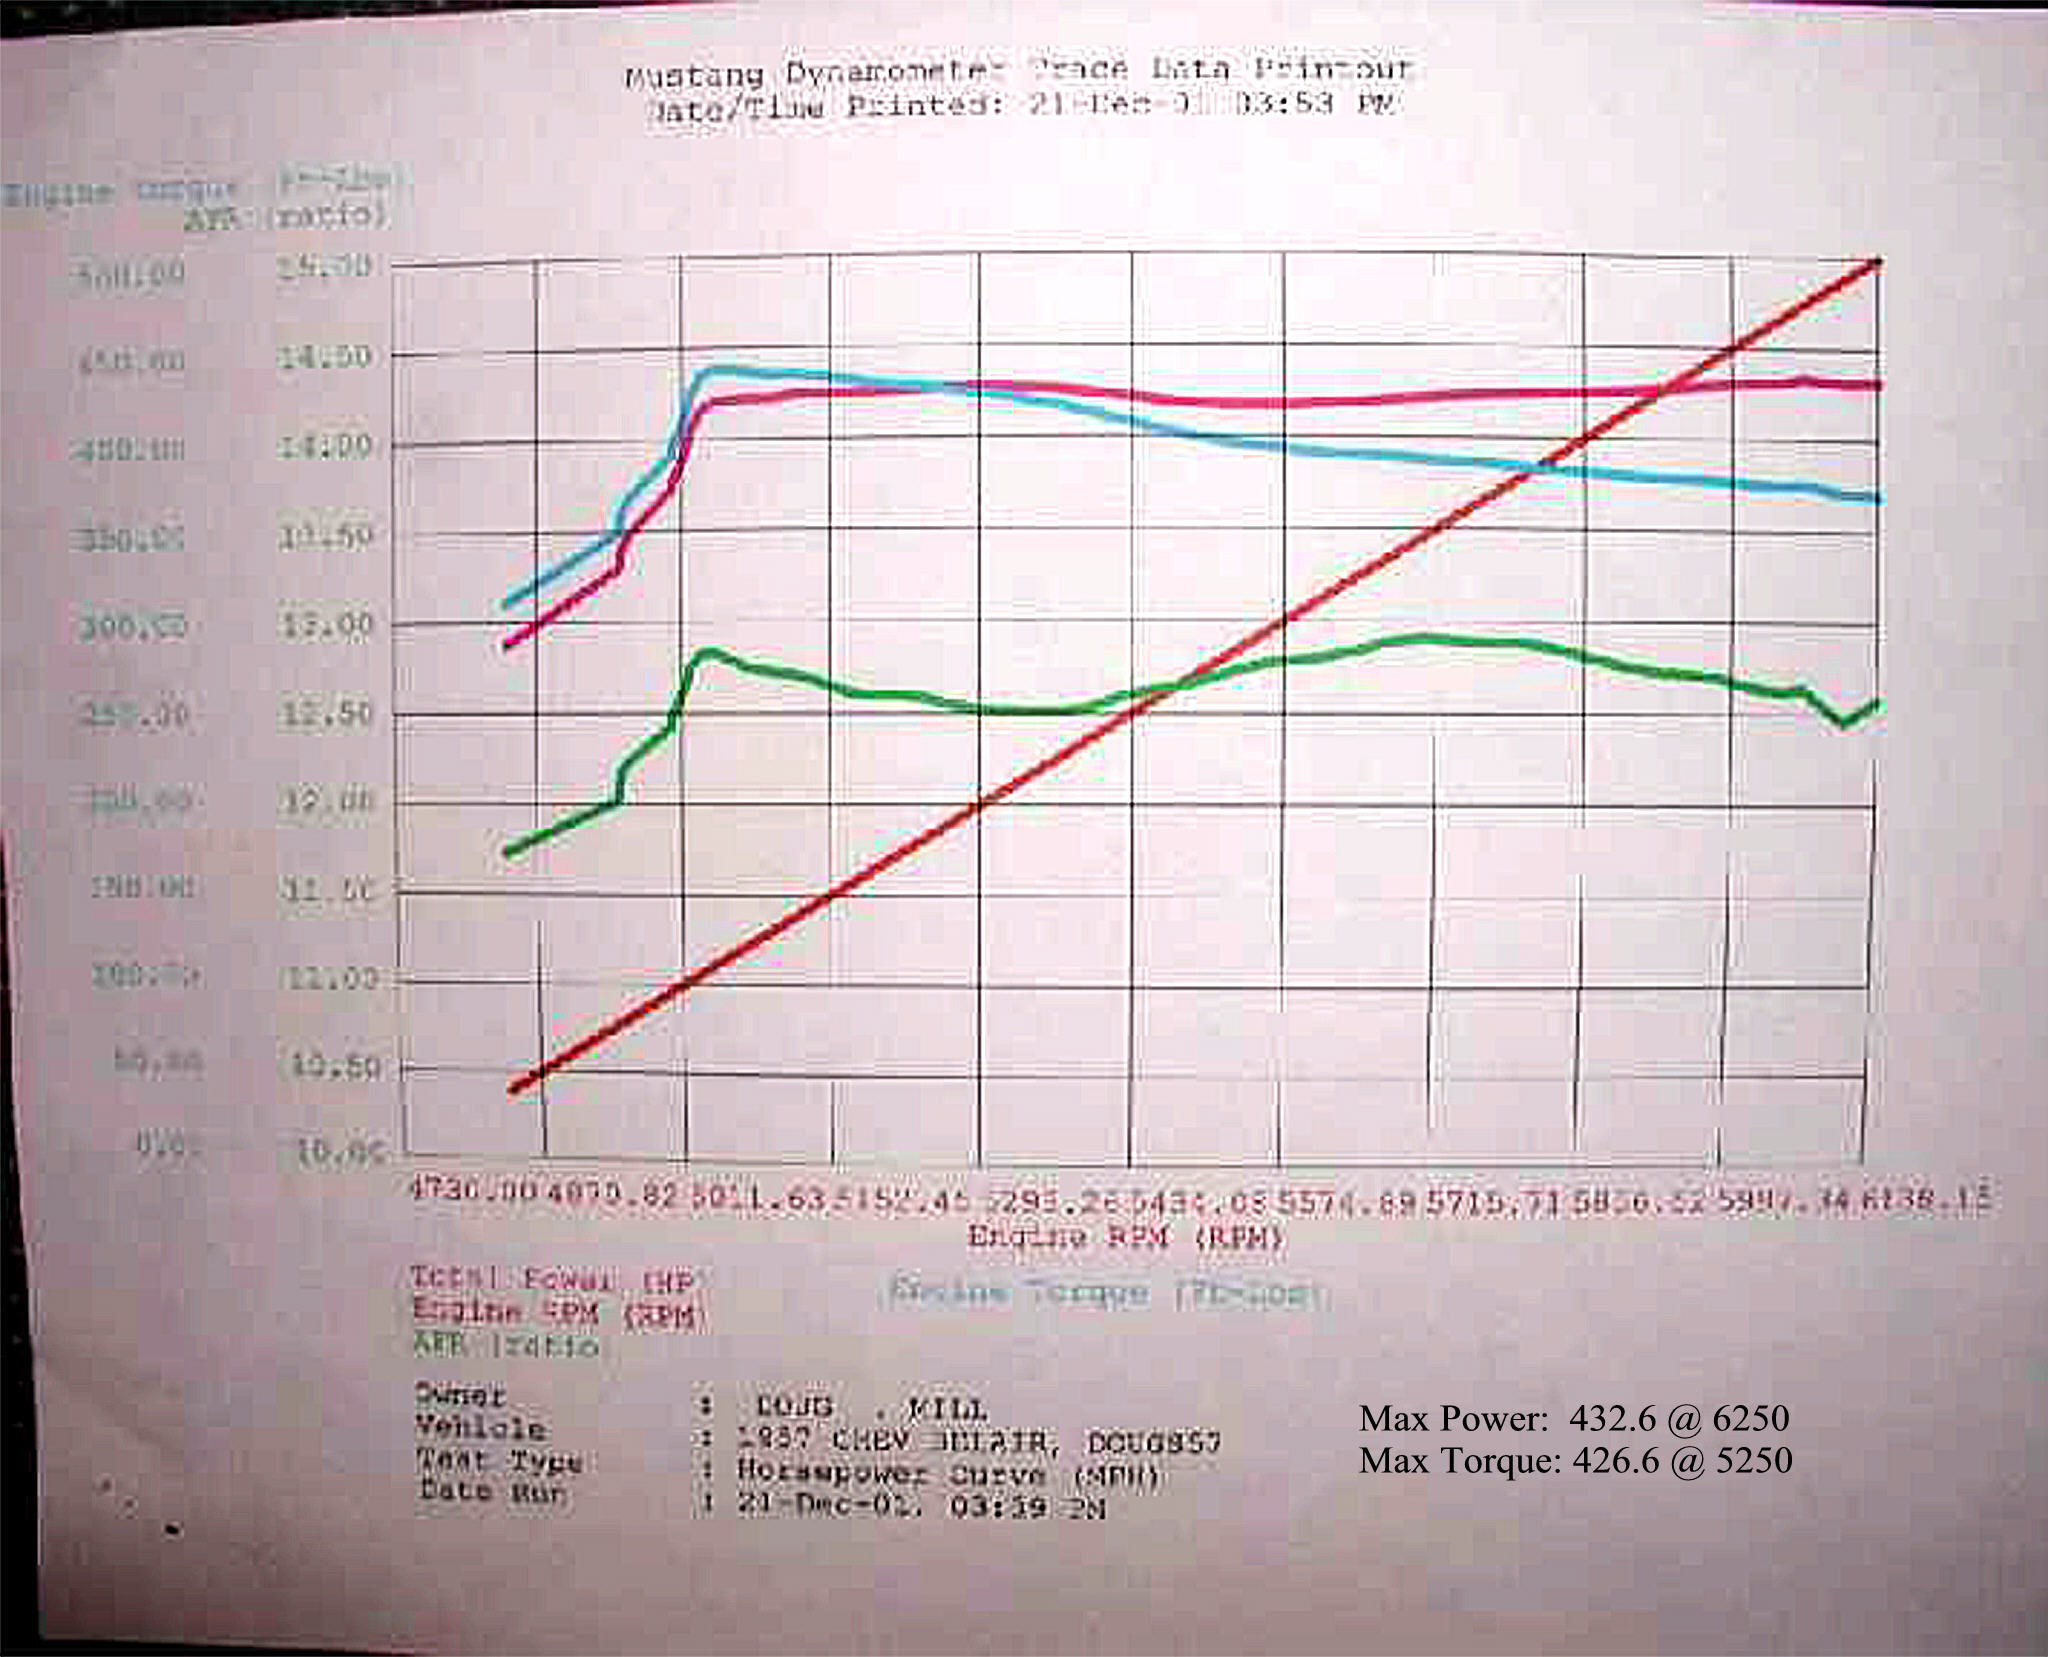 Chevrolet Bel Air Dyno Graph Results